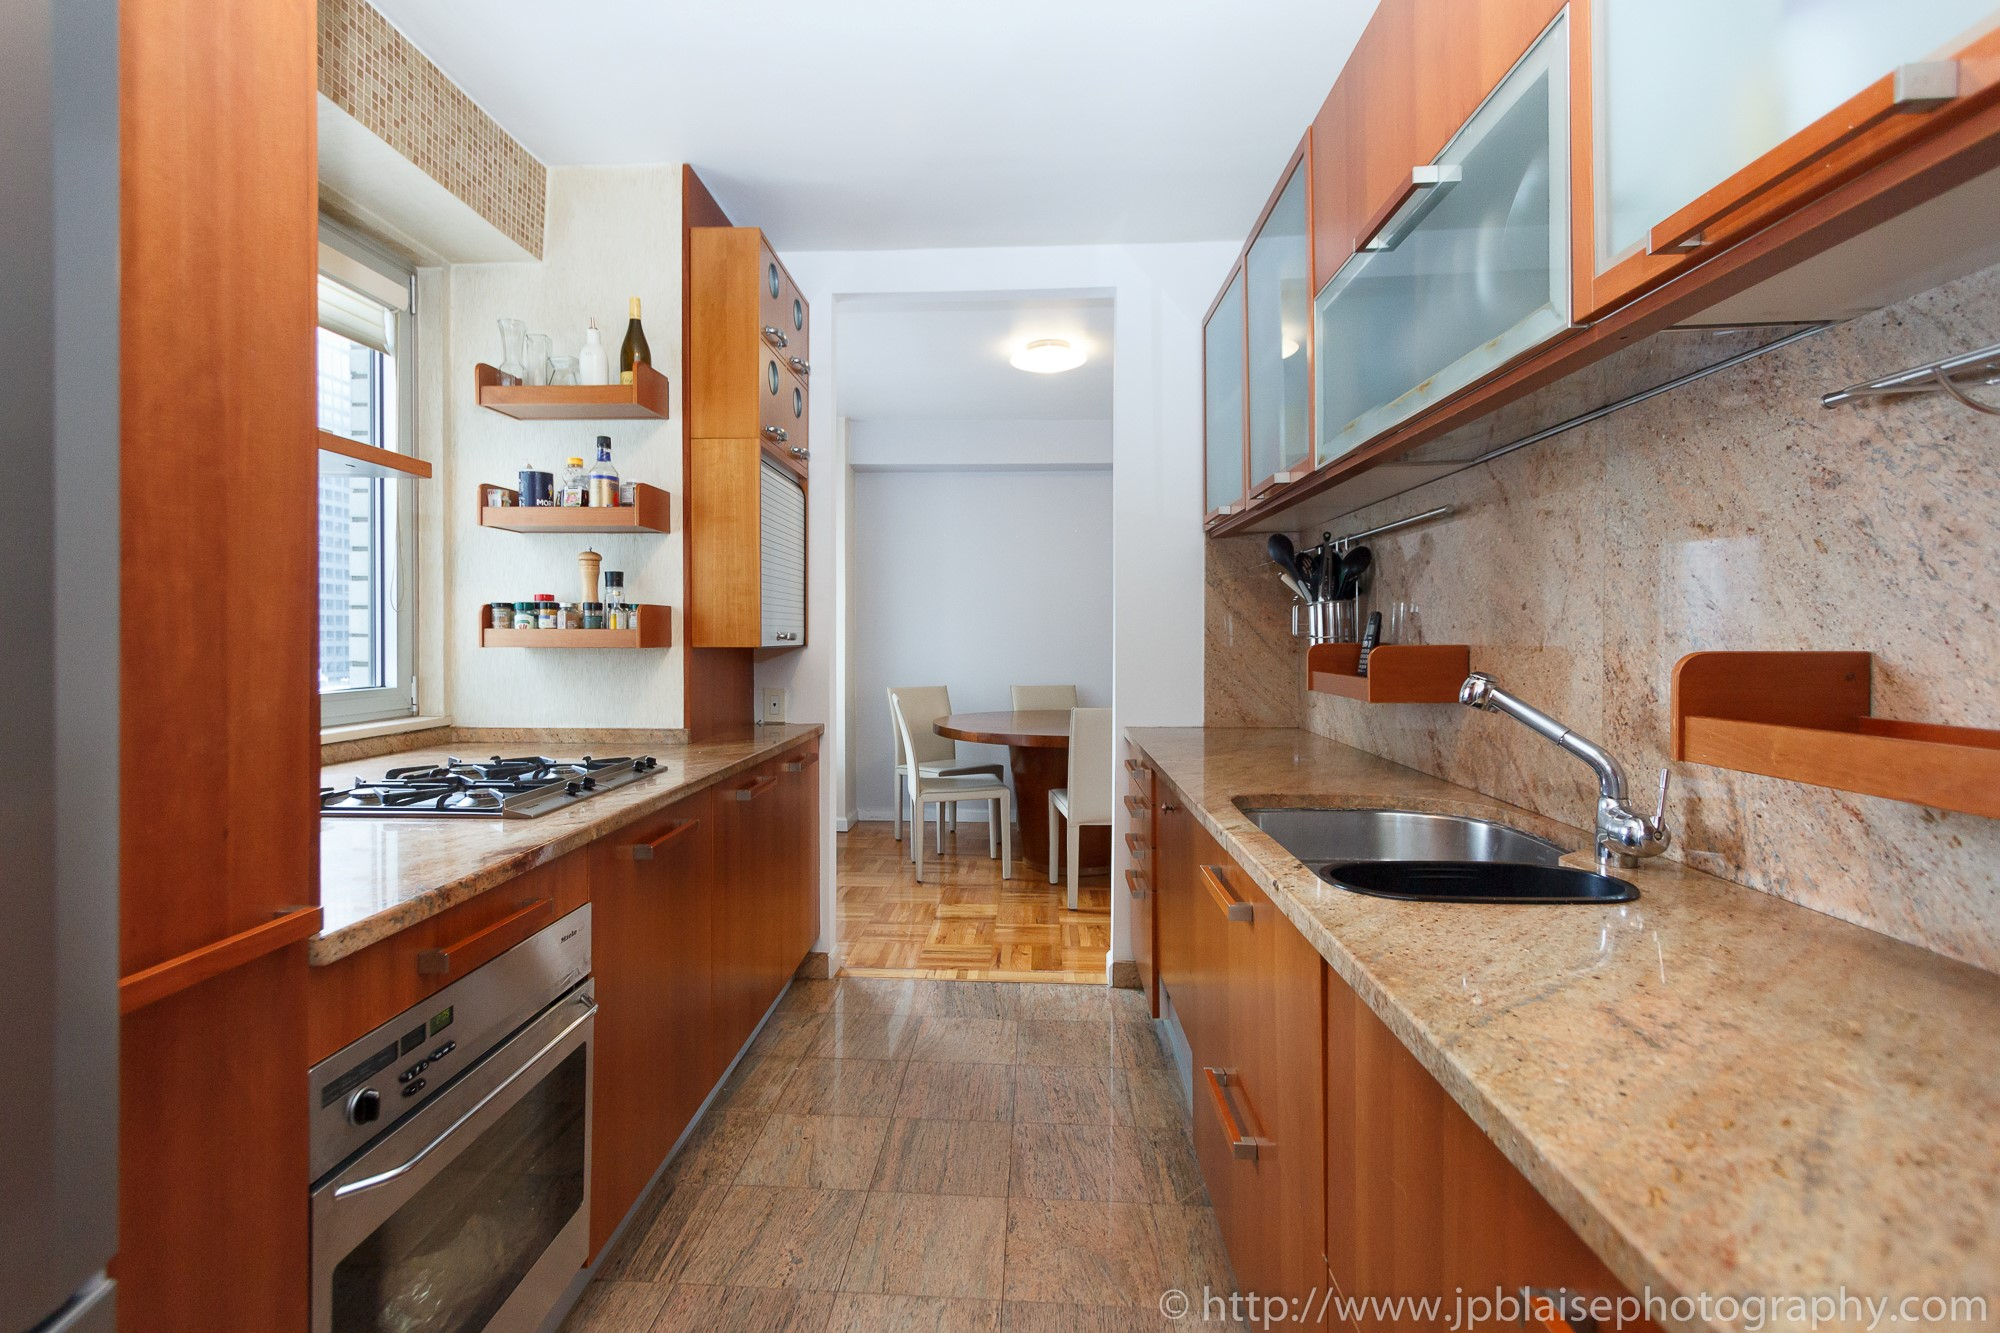 nyc apartment photographer work three bedroom sutton place new york city